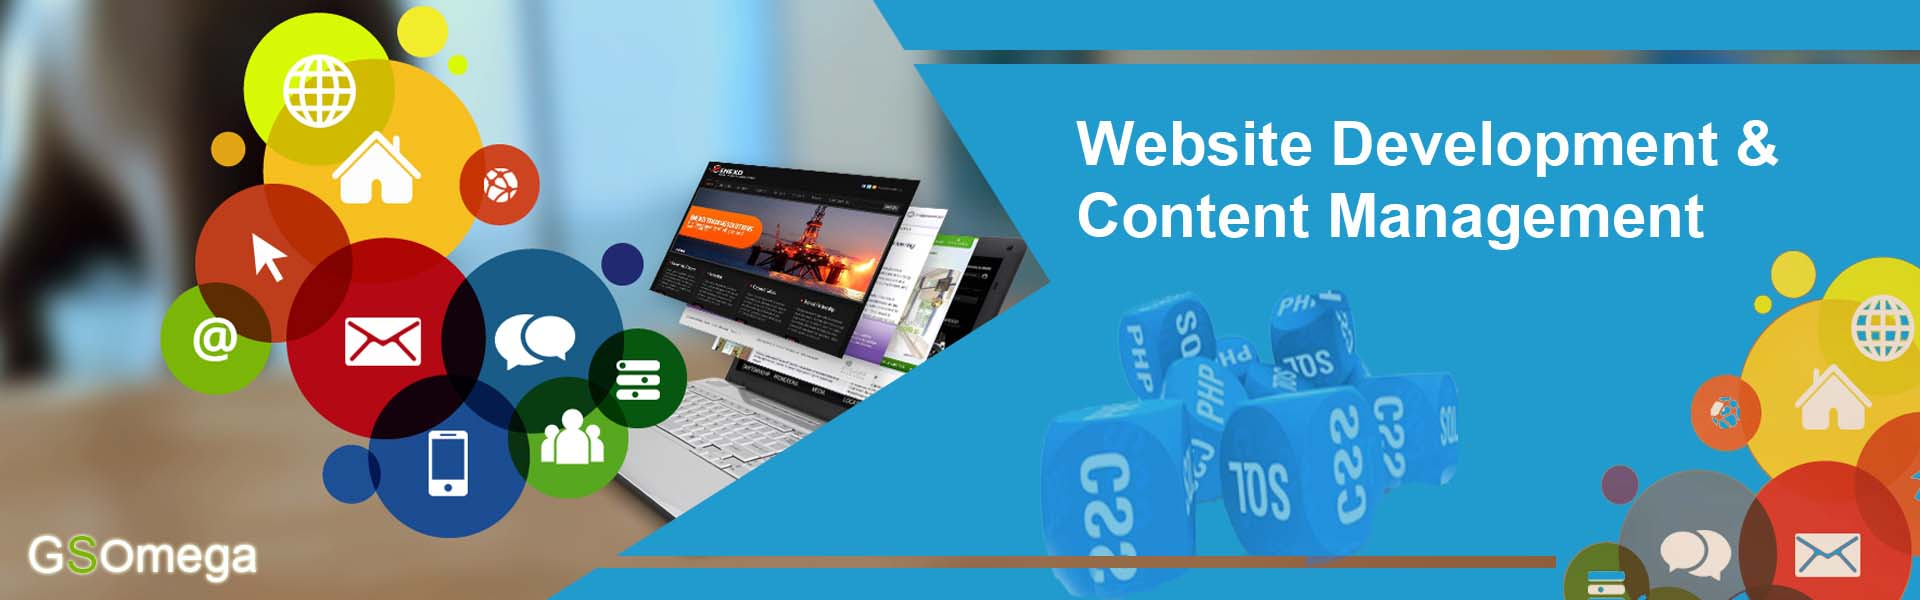 Website Development & Content Management